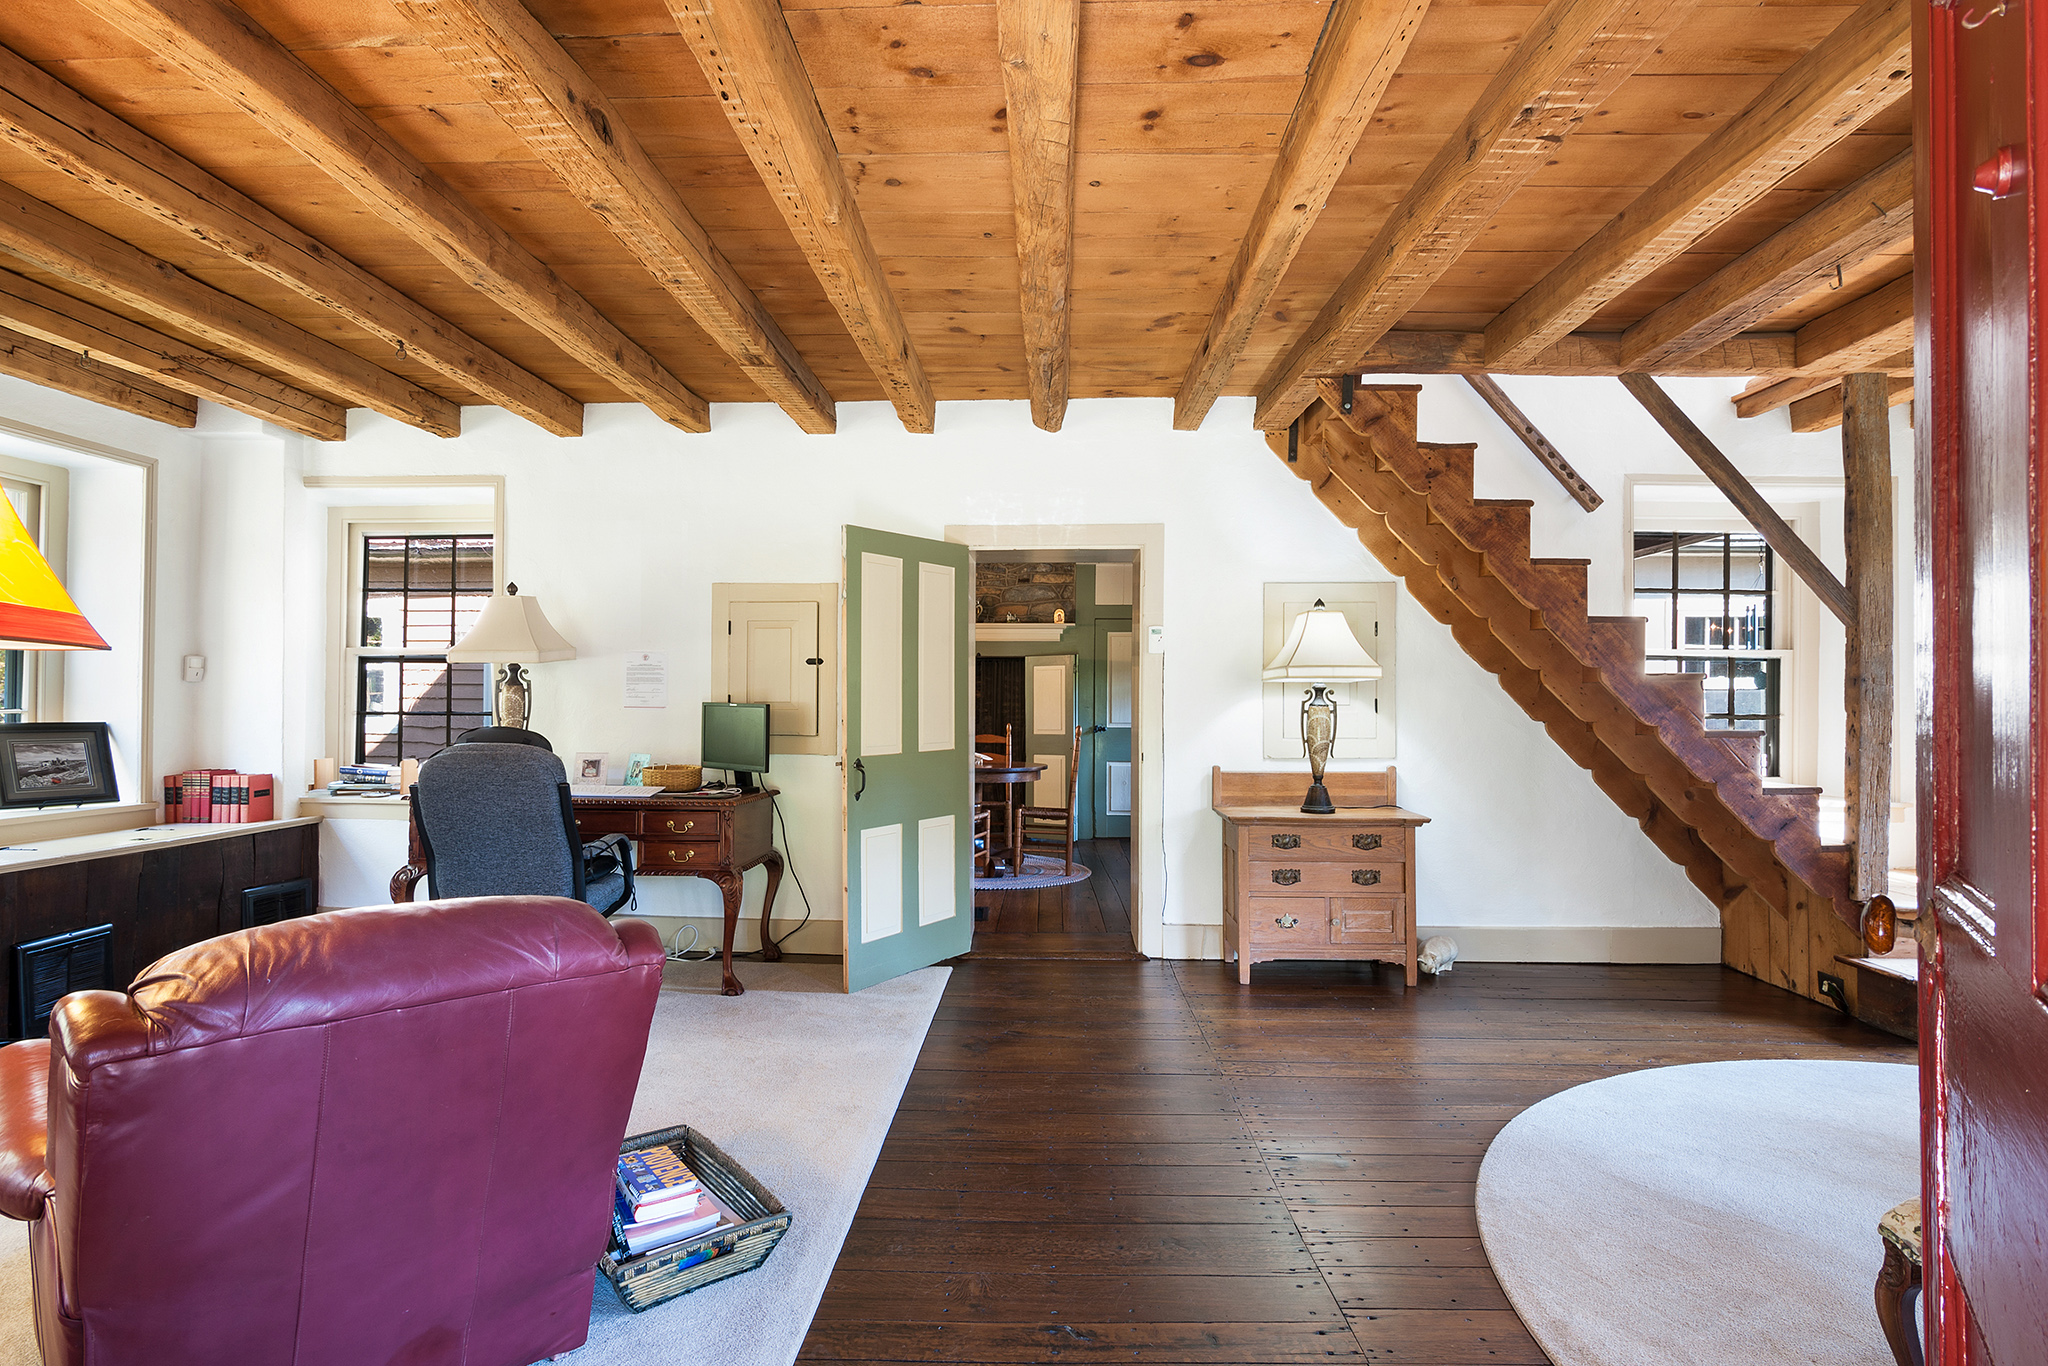 Barn Beam Ceiling Bucks County | #BucksBarnBeamCeiling